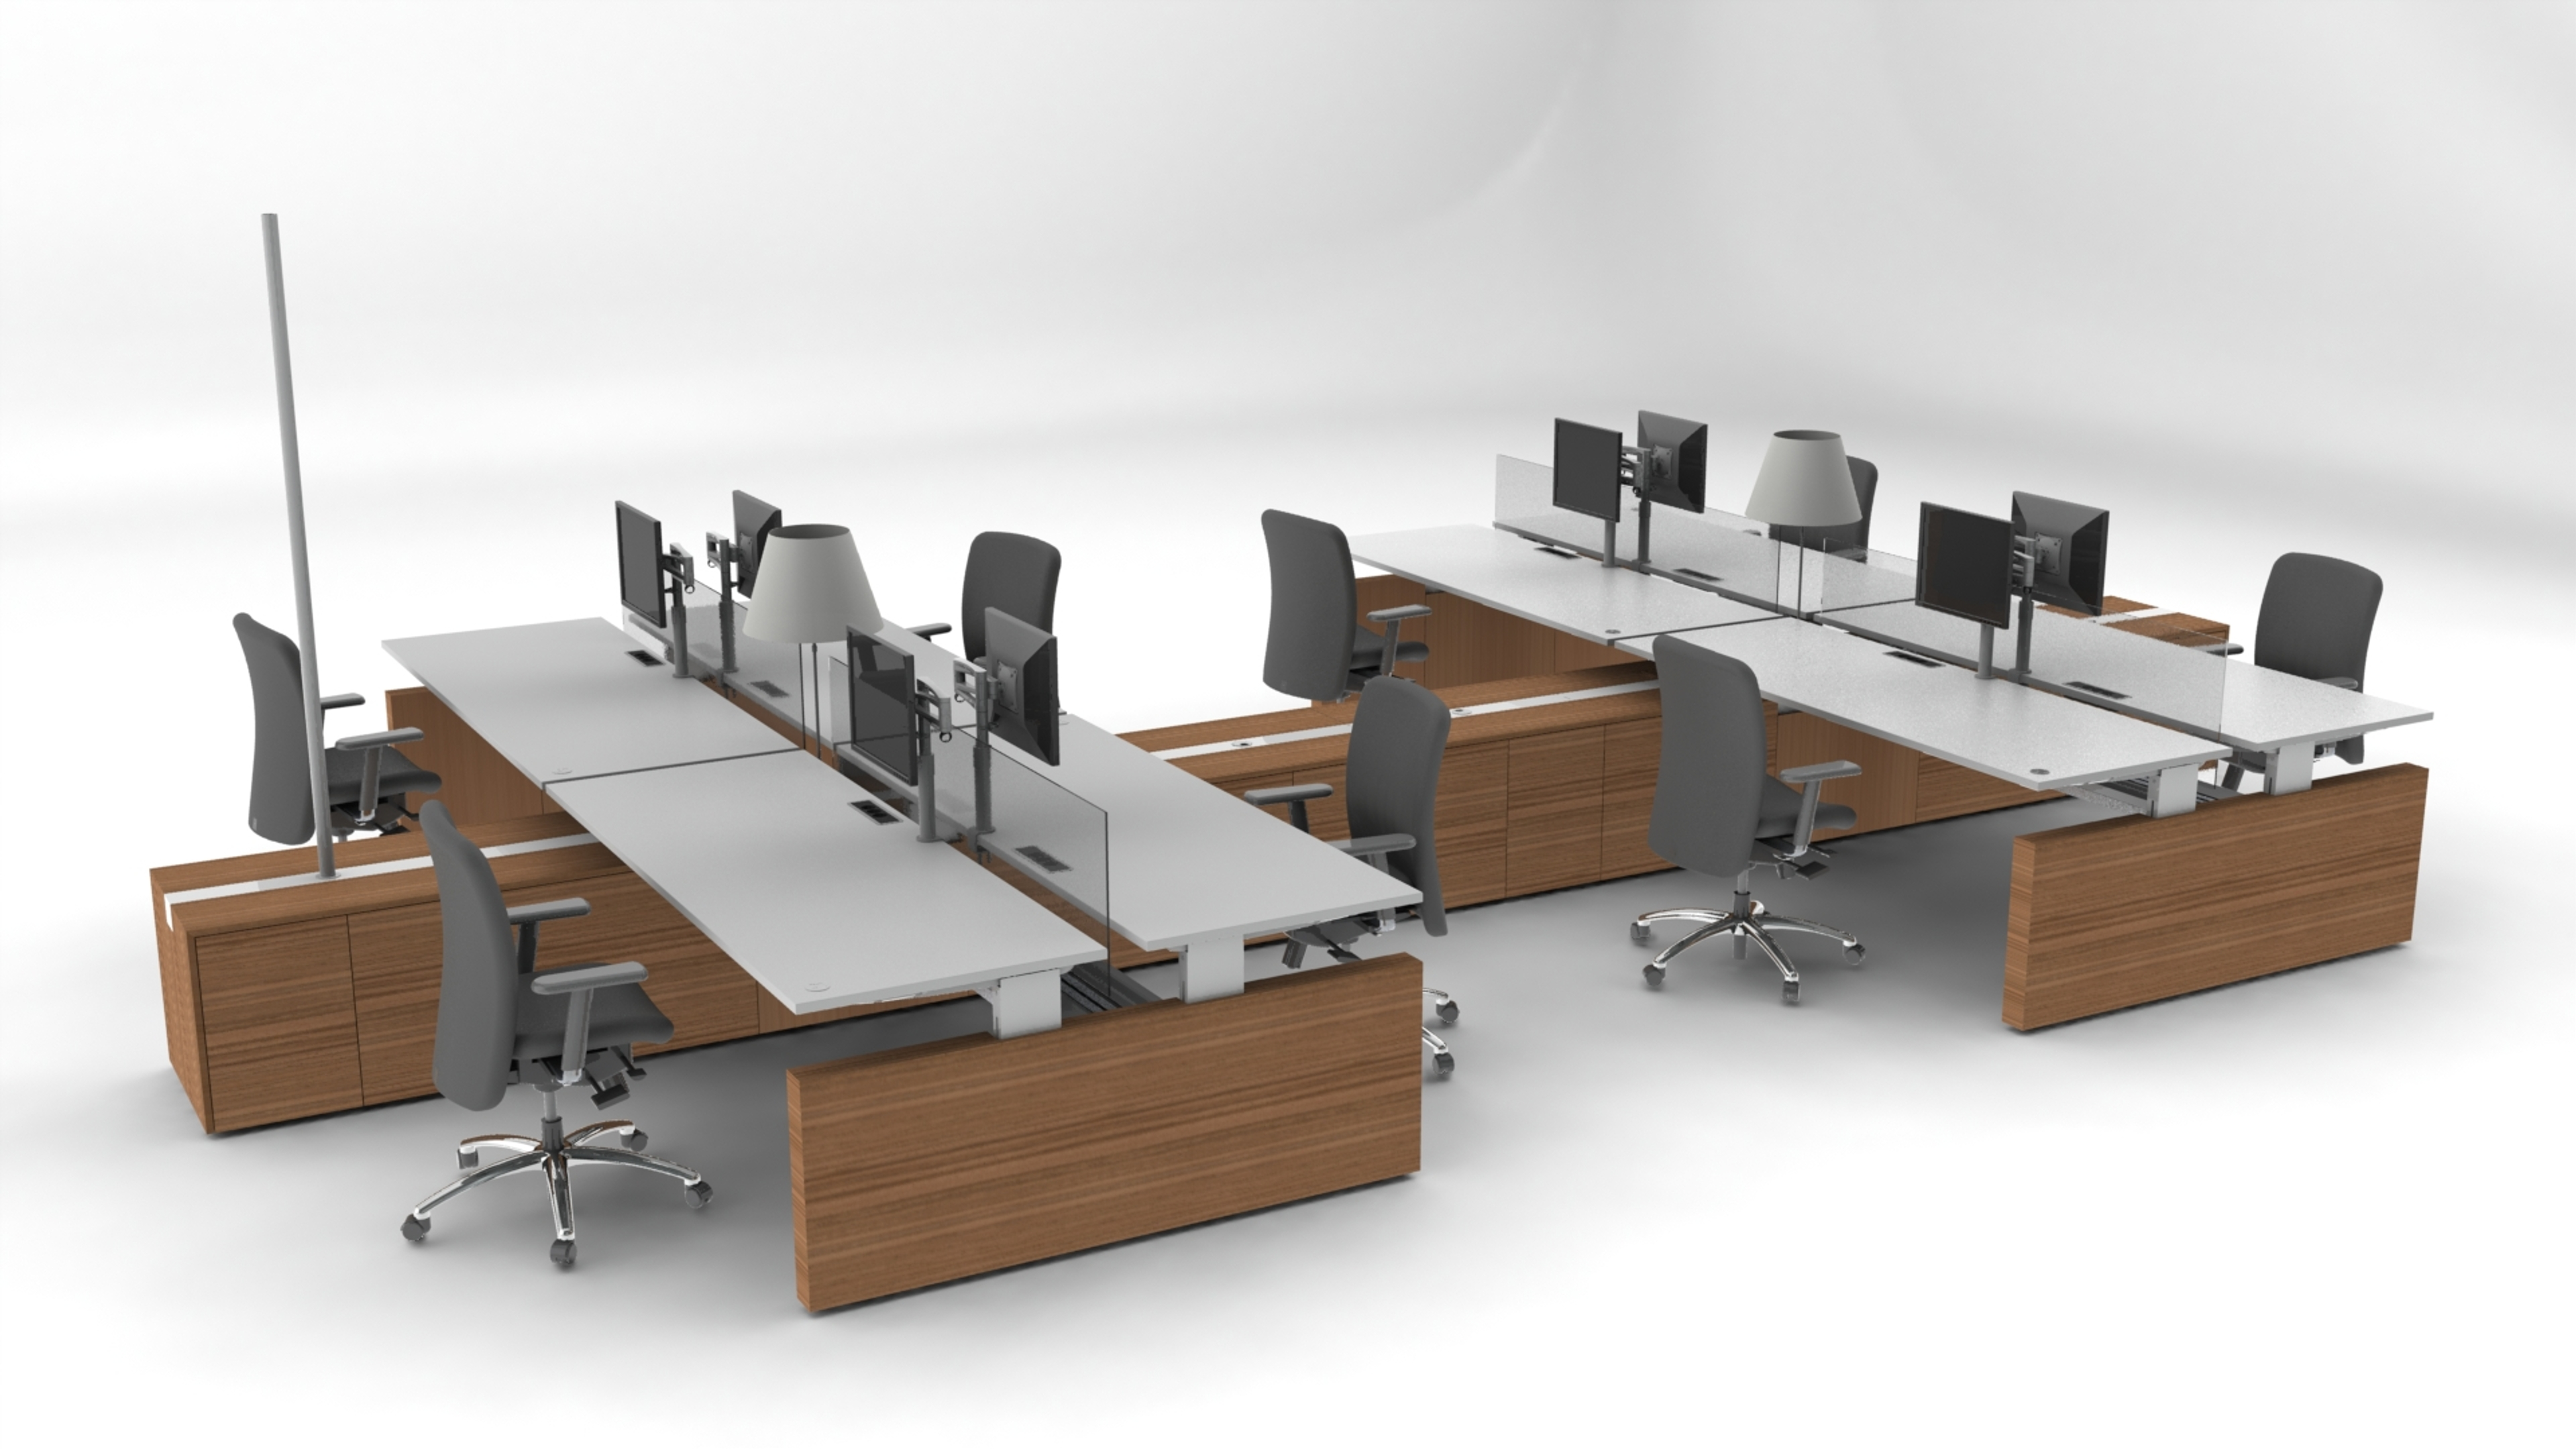 Office Furniture By Roel Verhagen Kaptein At Coroflotcom